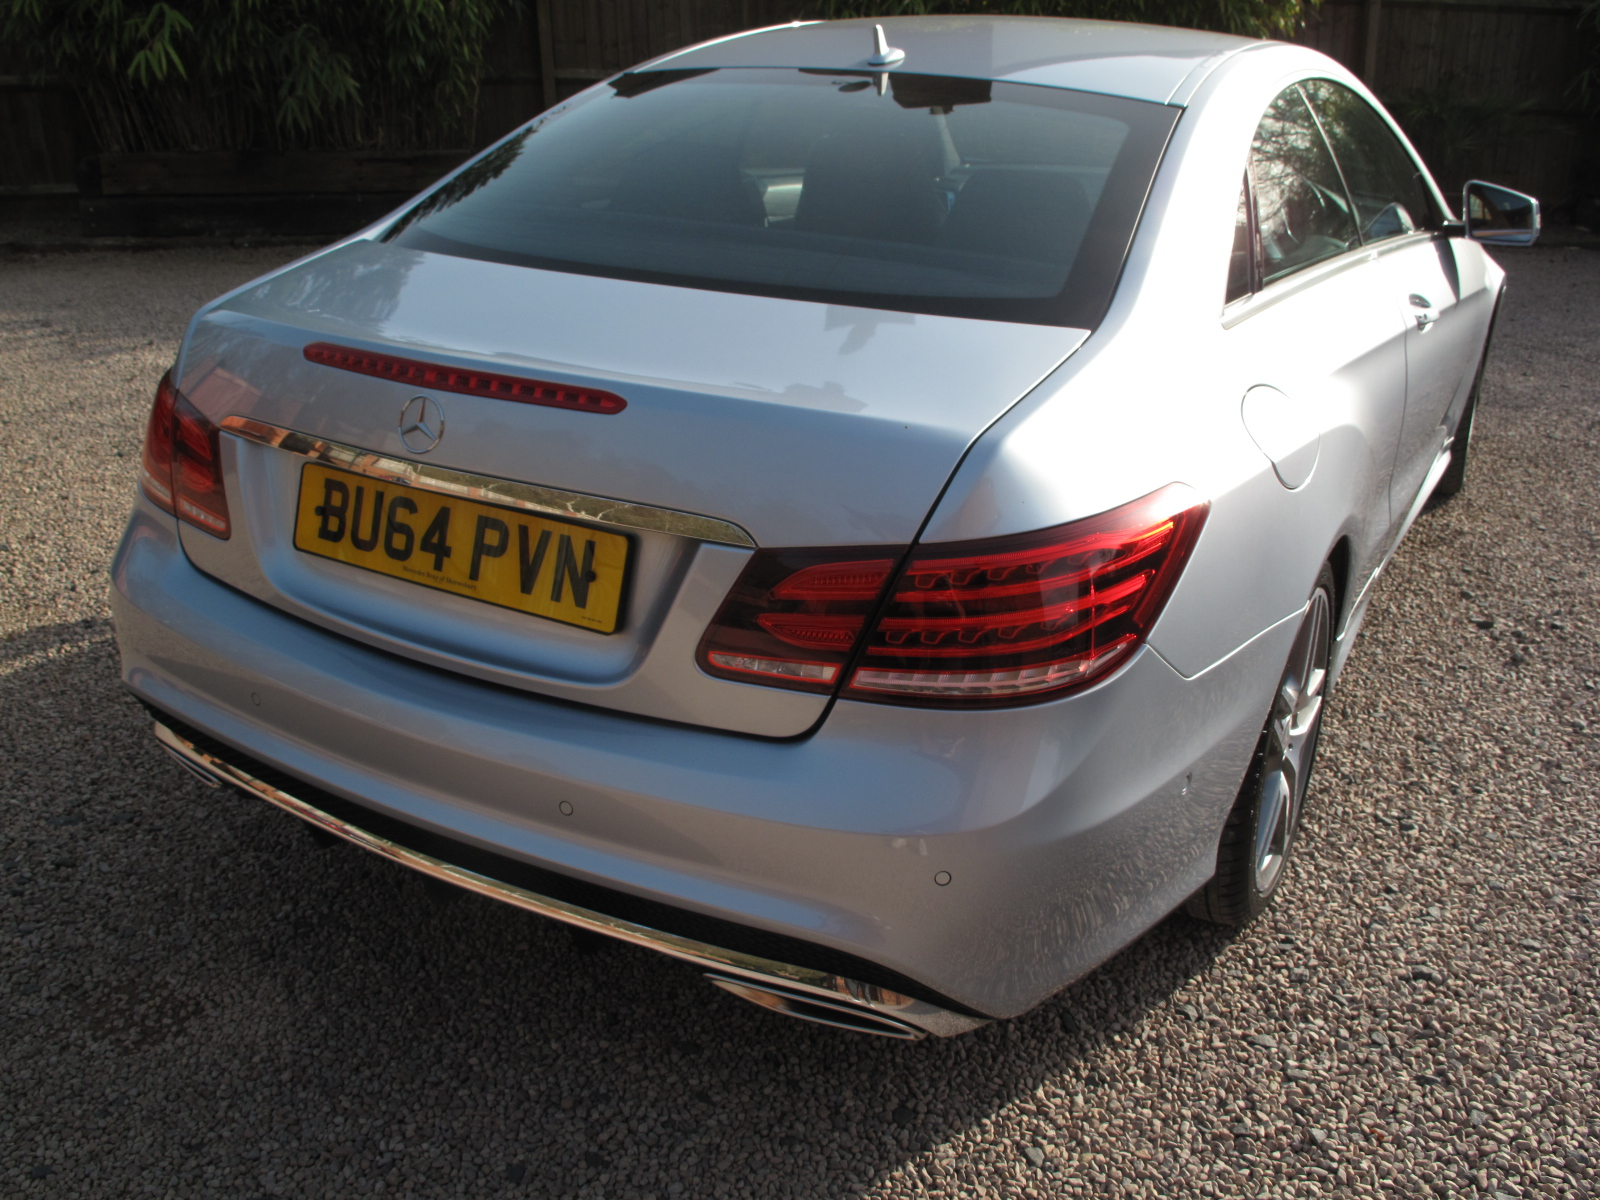 2014 64 Mercedes-Benz E Class 2.1 E250 CDI AMG Sport 7G-Tronic Plus 2dr ABSOLUTELY PRISTINE CONDITION THROUGHOUT! full